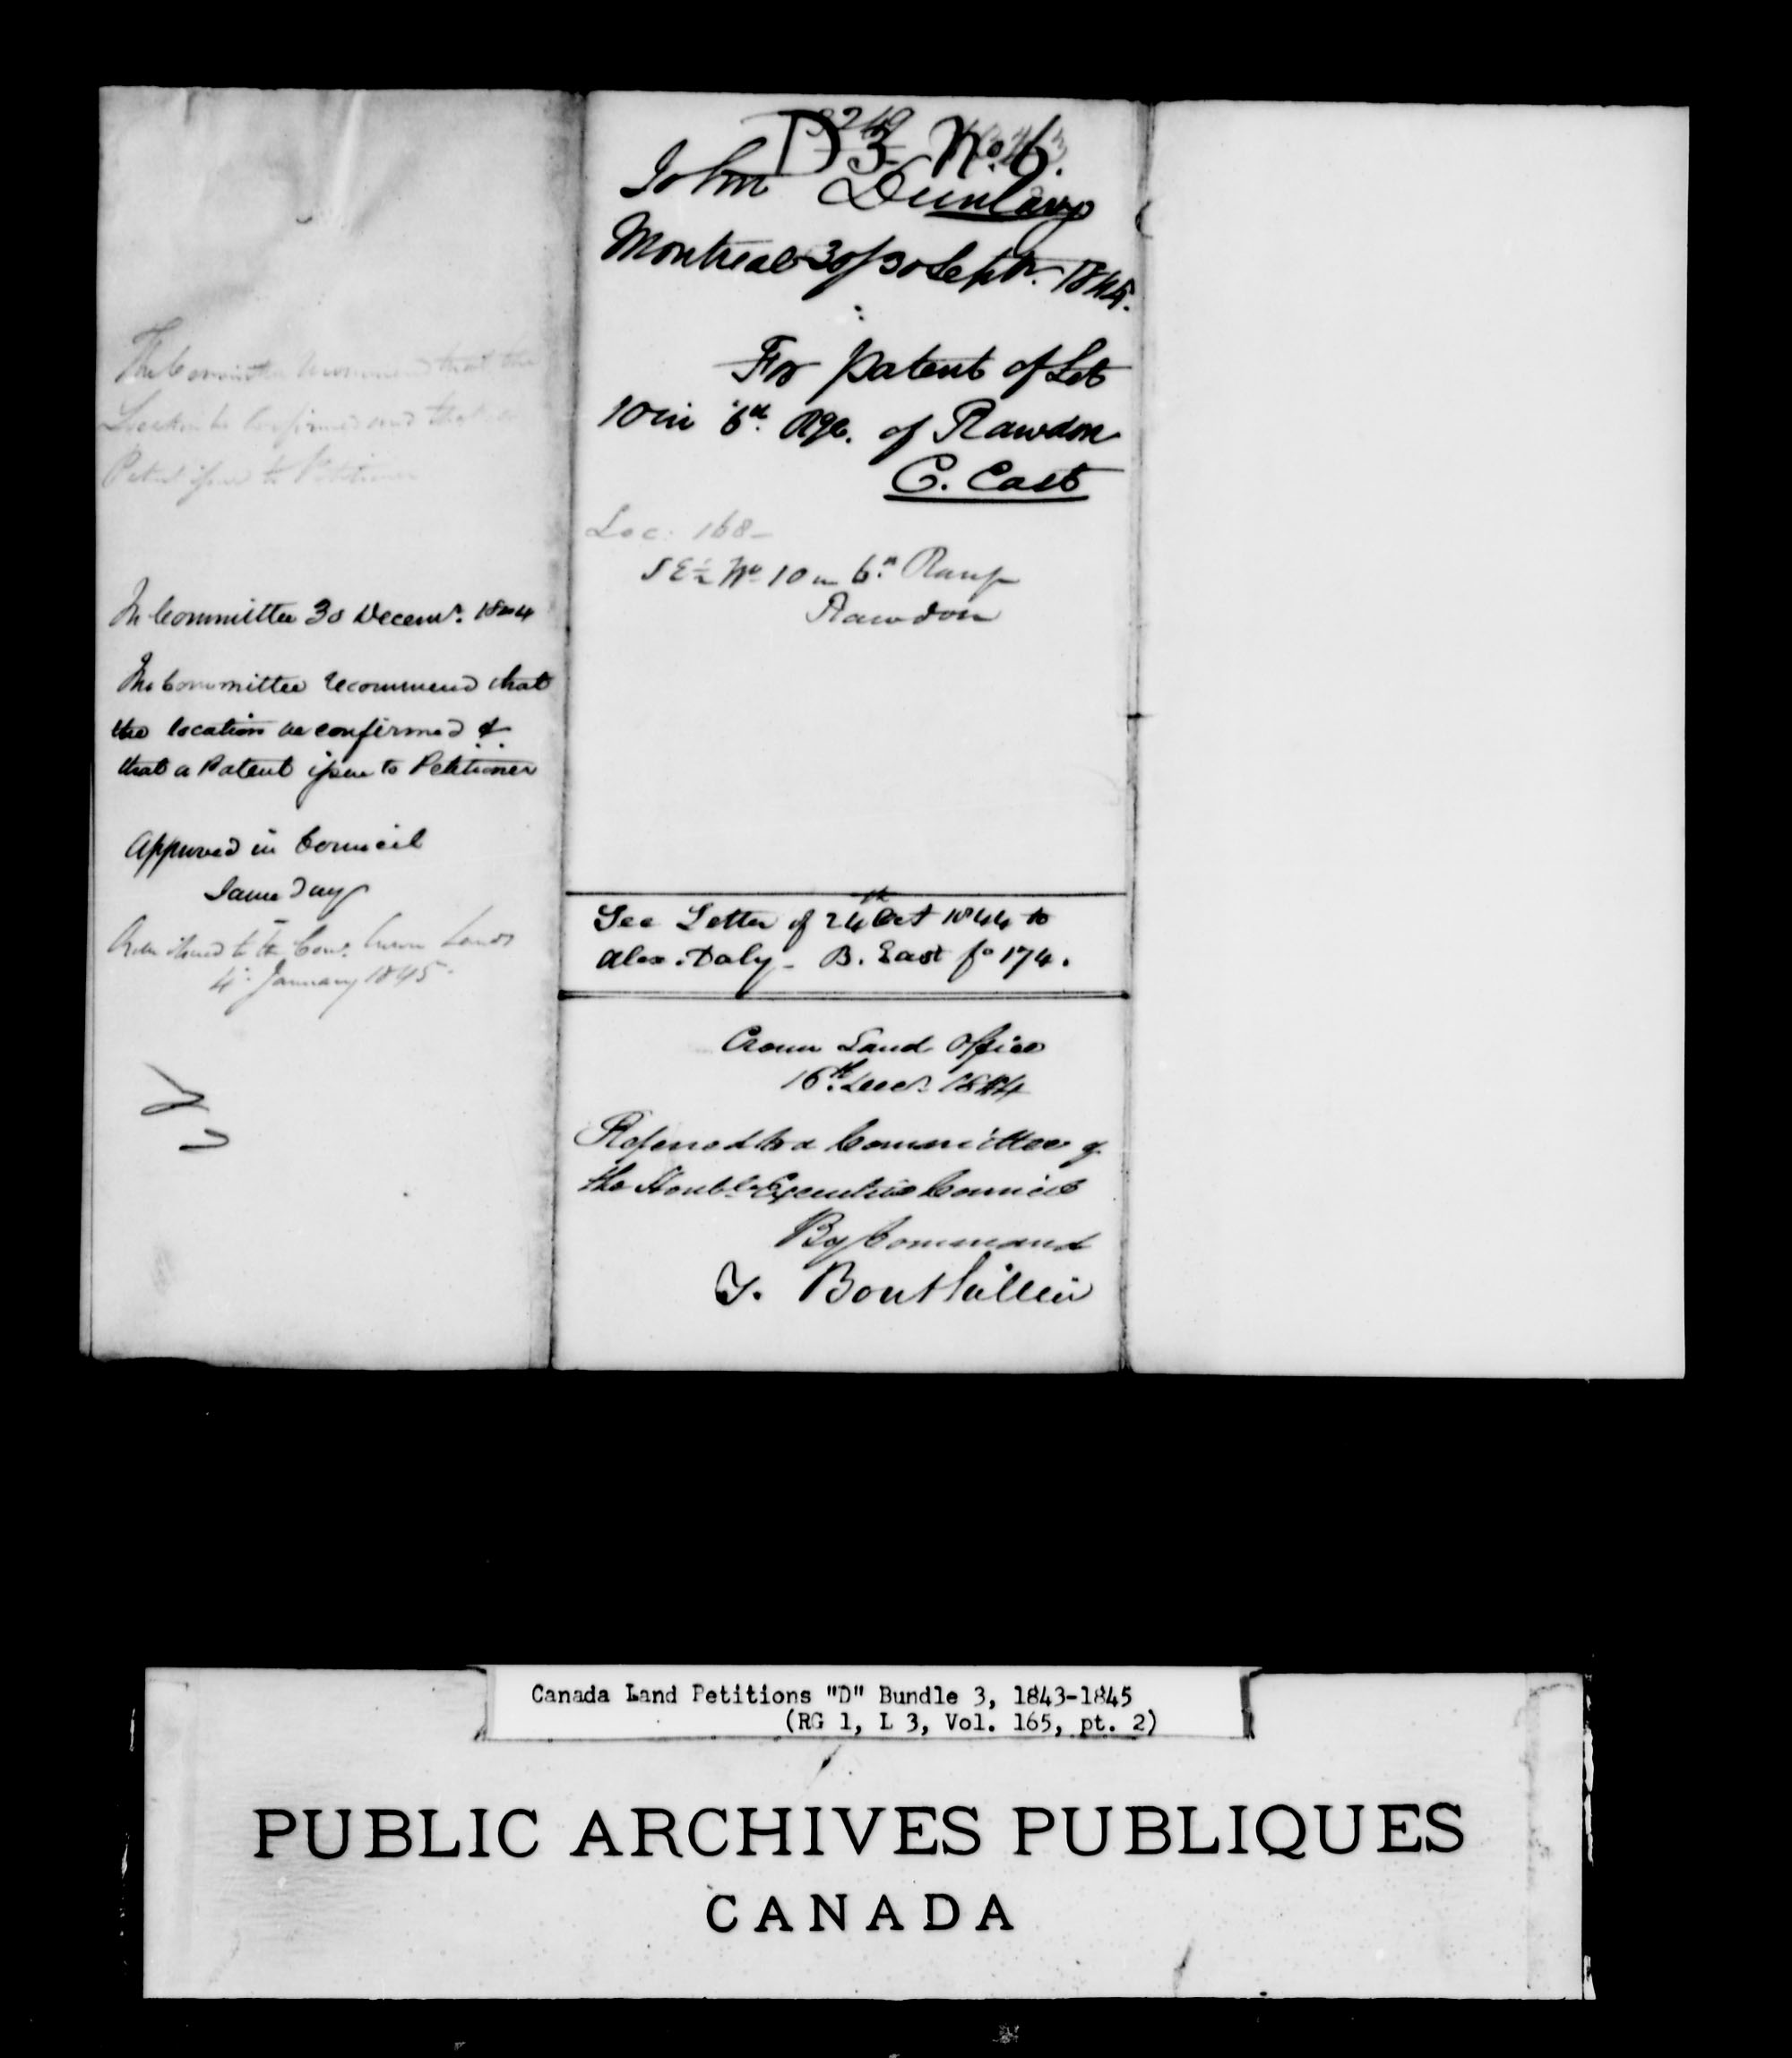 Title: Upper Canada Land Petitions (1763-1865) - Mikan Number: 205131 - Microform: c-1880